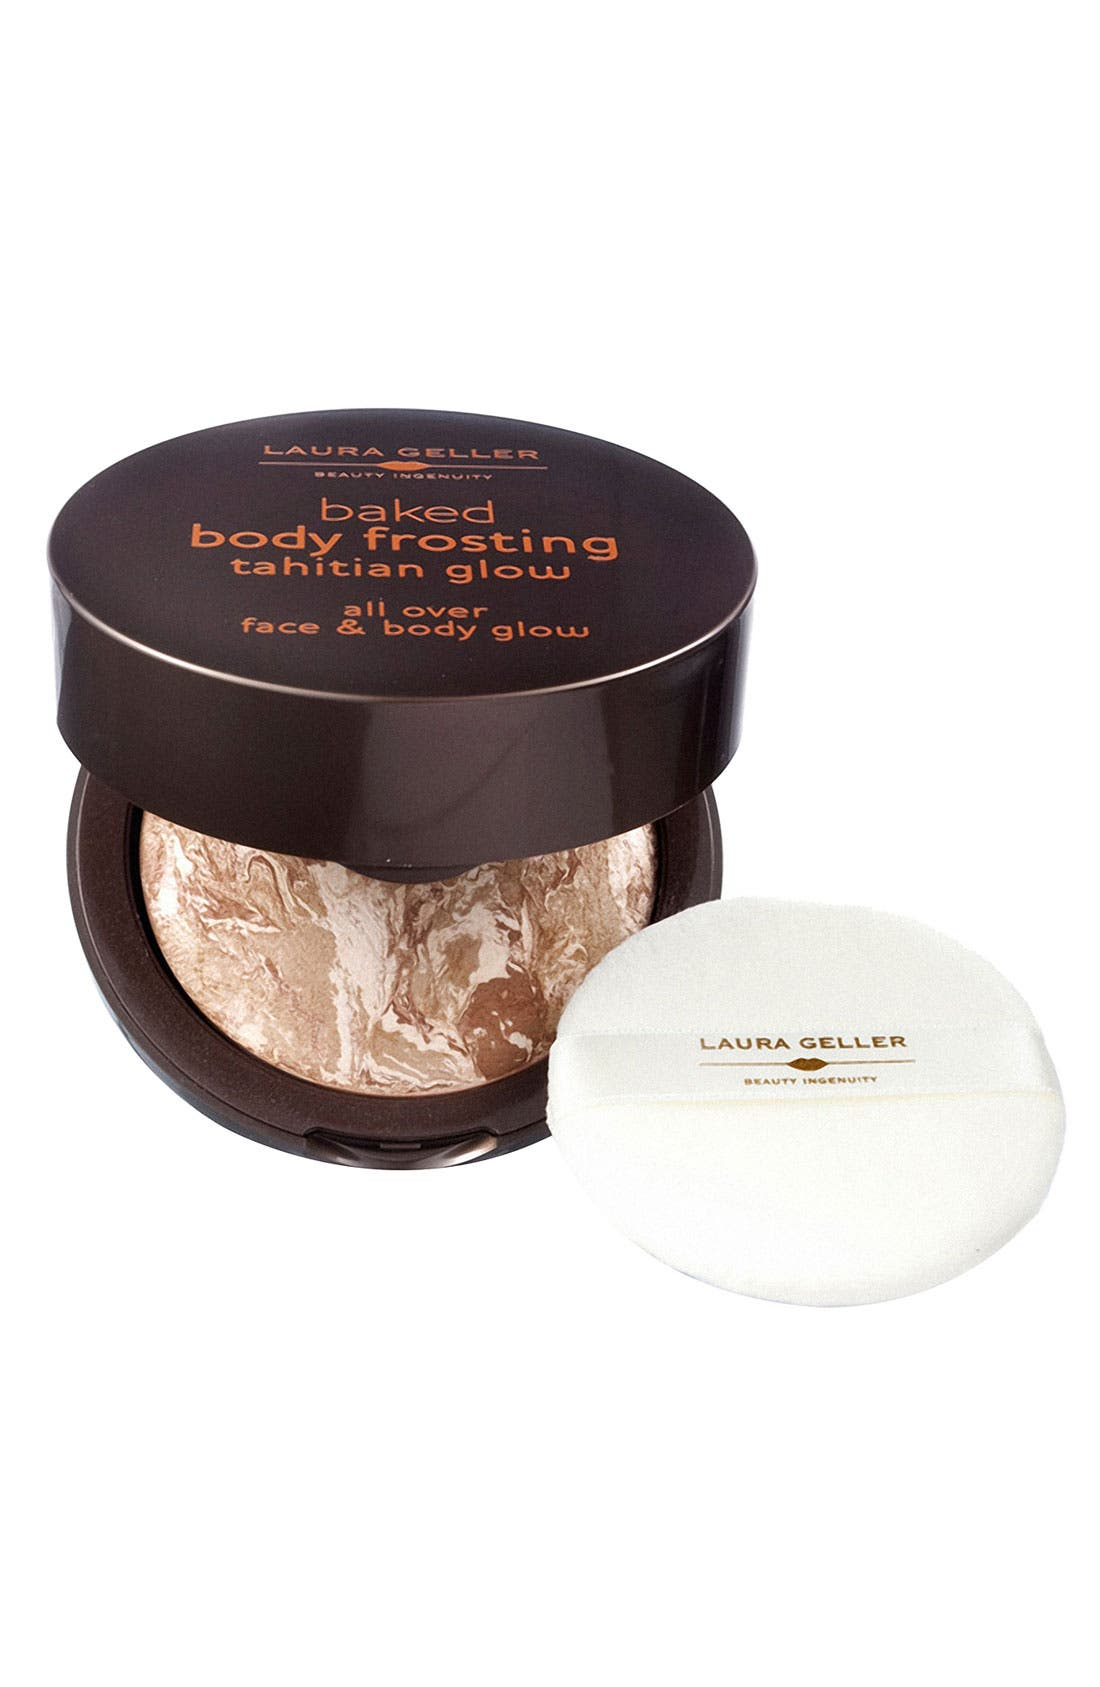 Laura Geller Beauty 'Baked Body Frosting - Tahitian Glow' All Over Face & Body Glow